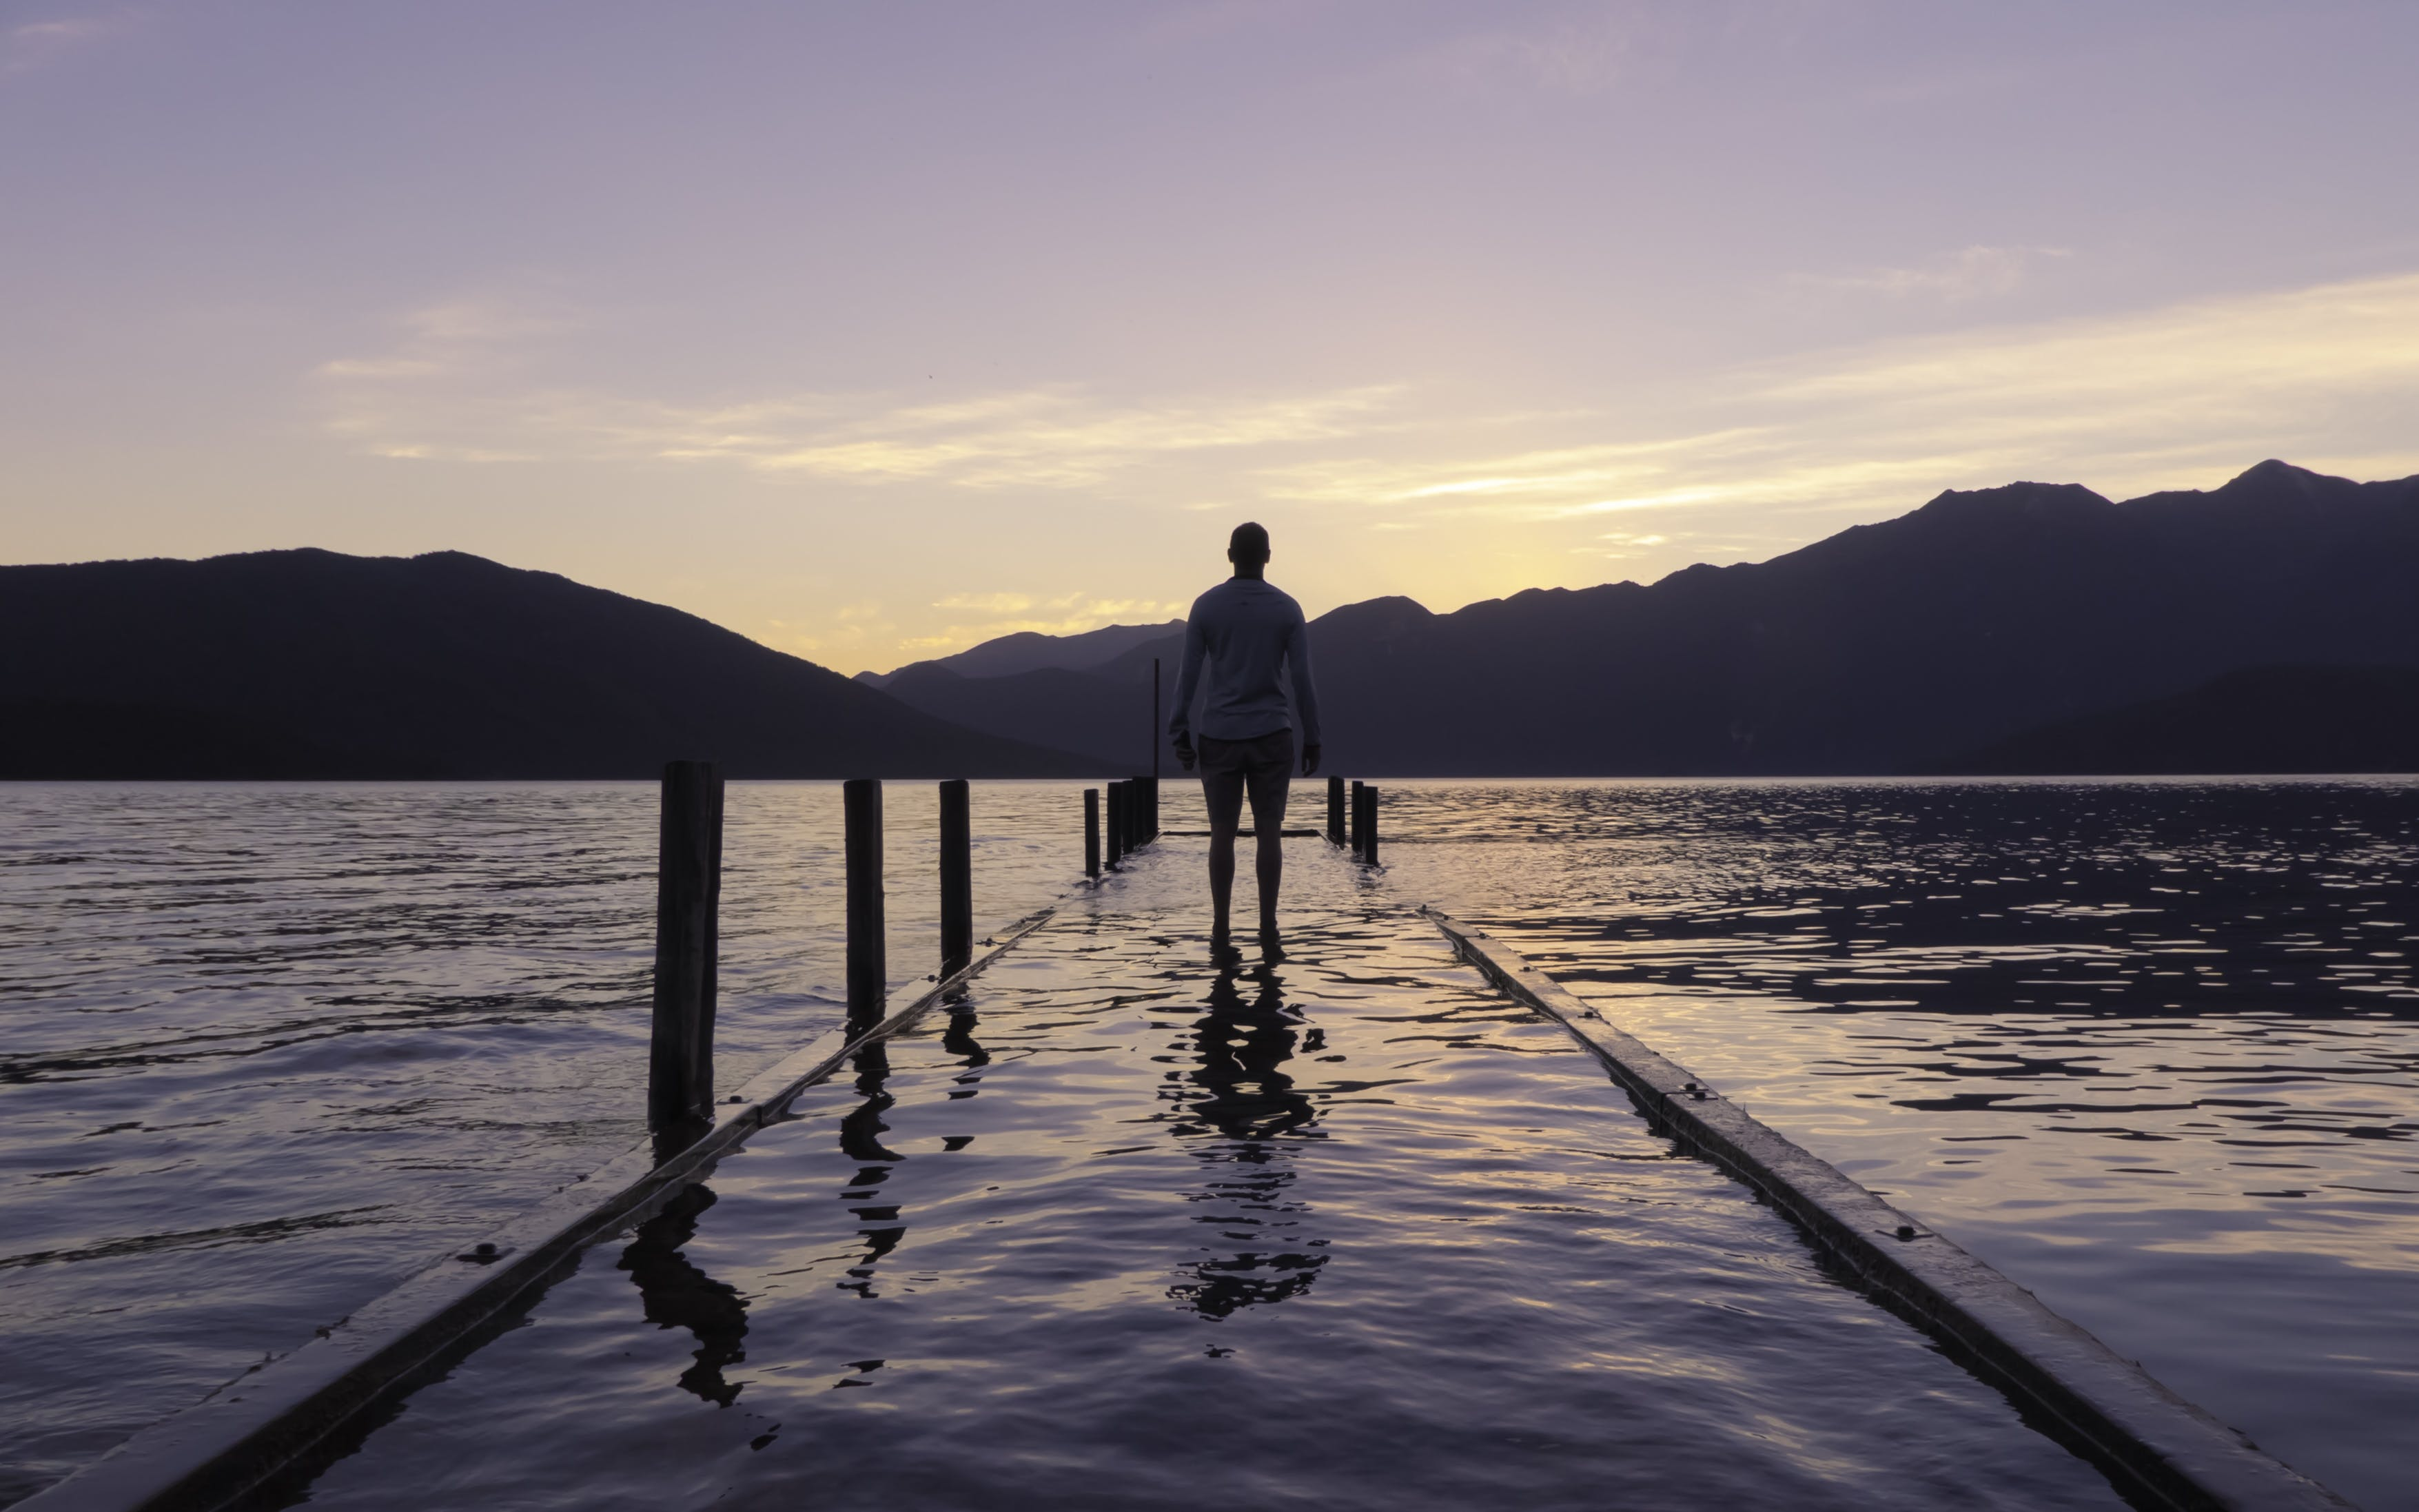 Person Standing on Dock With Water